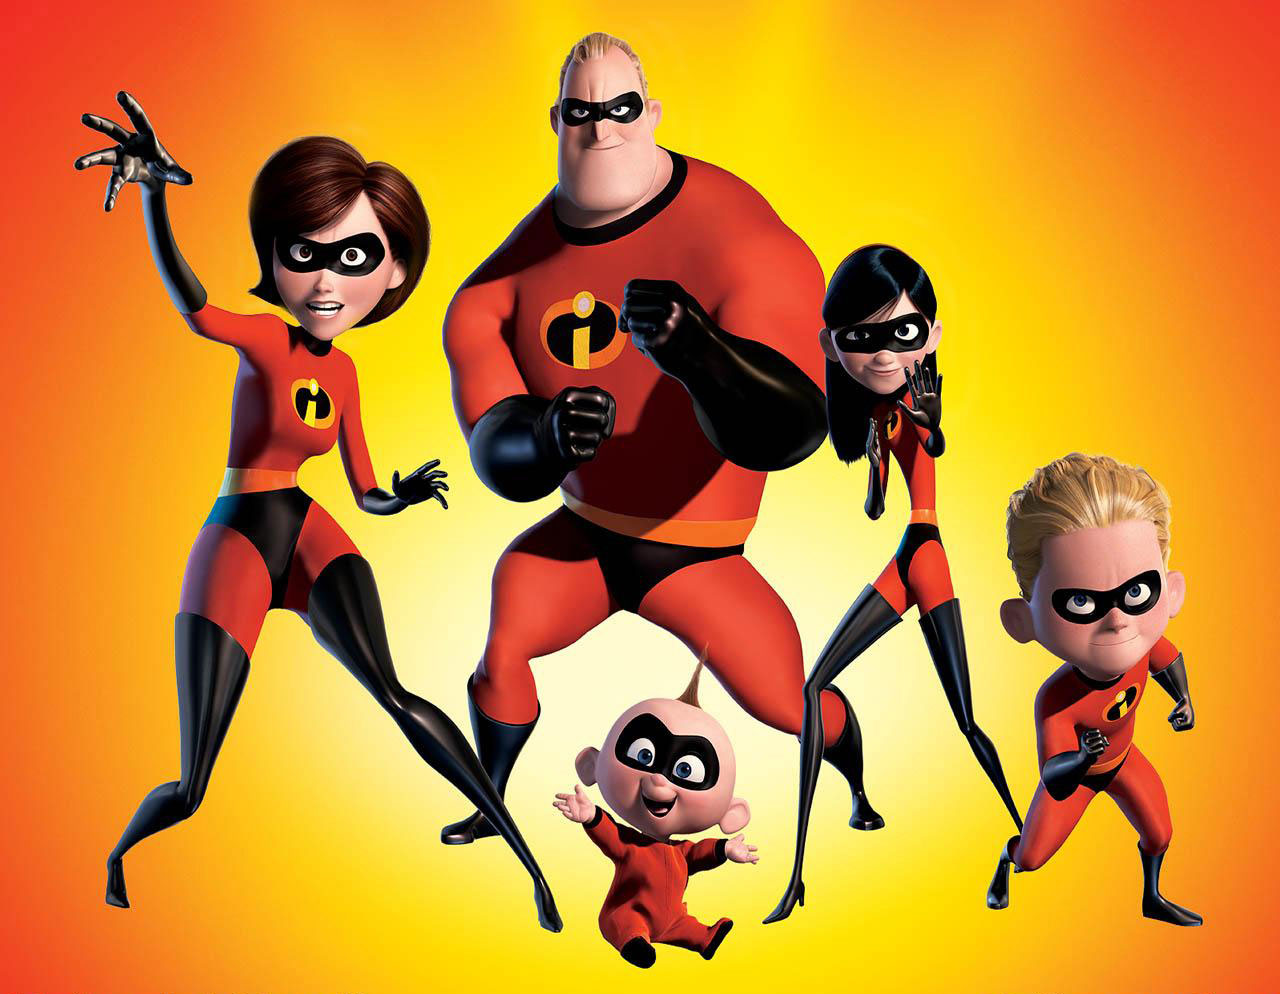 The animated movie The Incredibles definitely had to make the list. The family of four are undercover superheroes who try to have a normal life until their talents are needed to help save the world. It's original and will keep you laughing and thoroughly enjoying the characters. The plot is touching and unique, making for […]